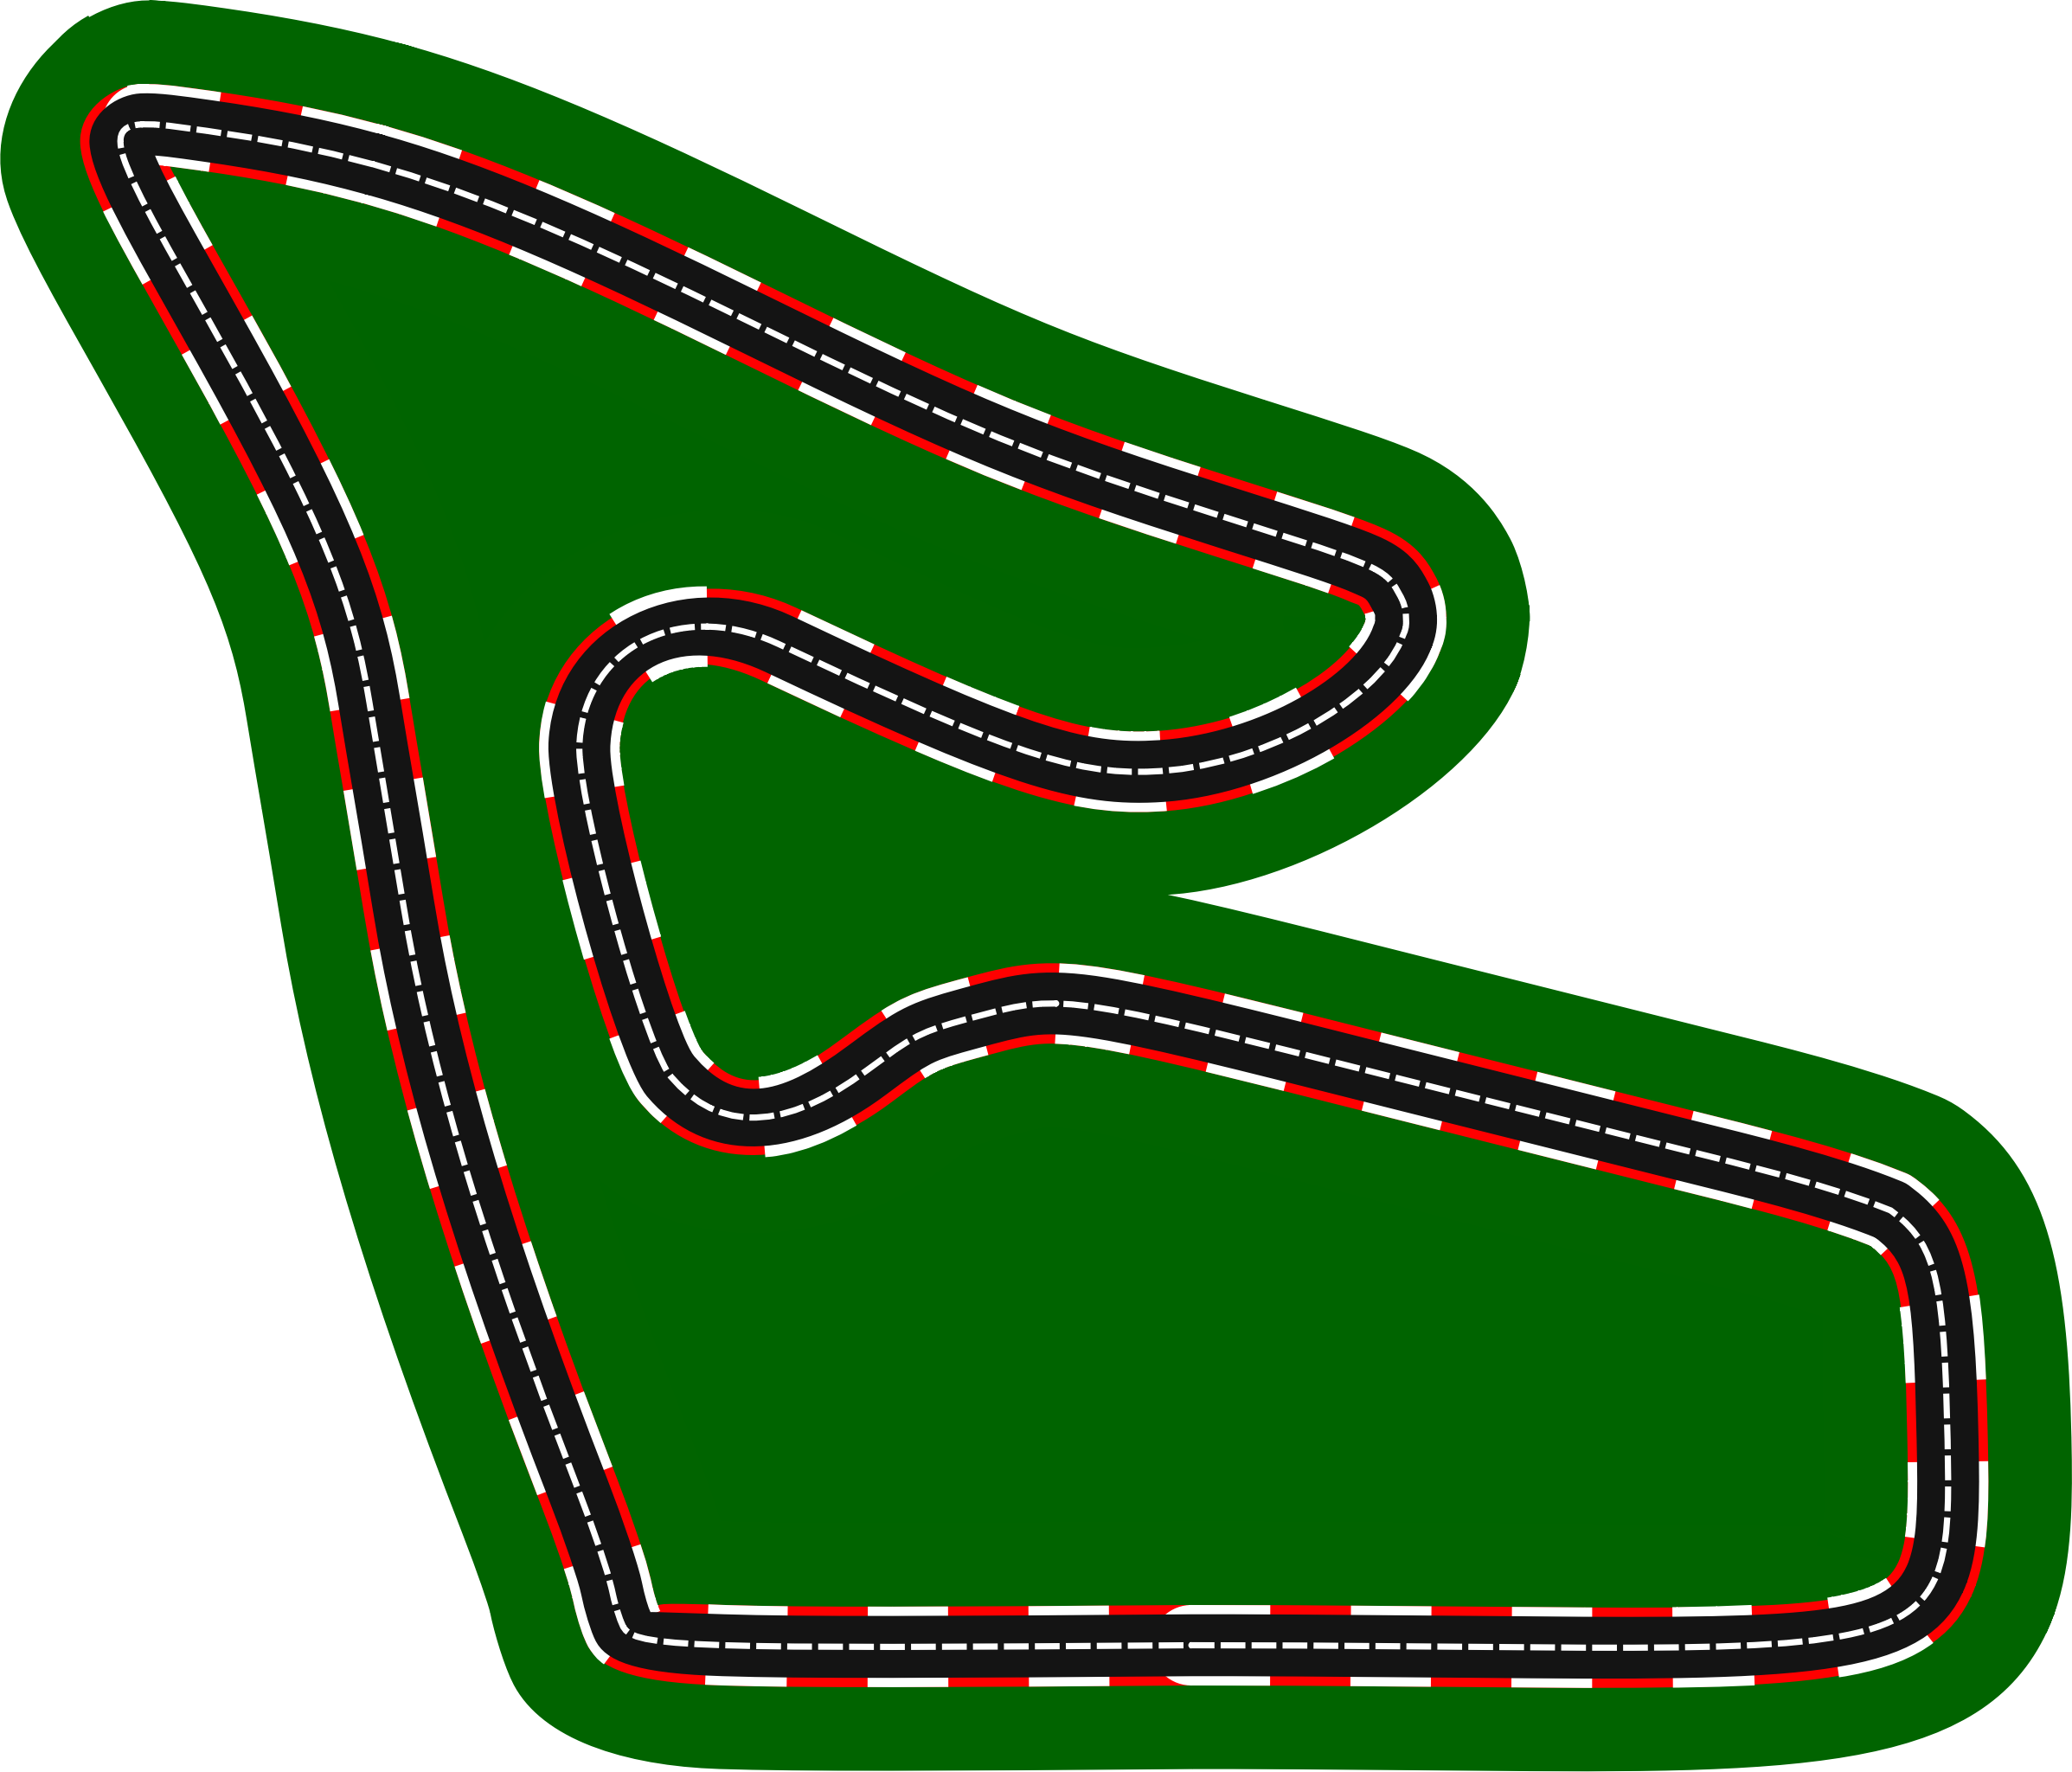 Race clipart racecourse. F circuits red bull